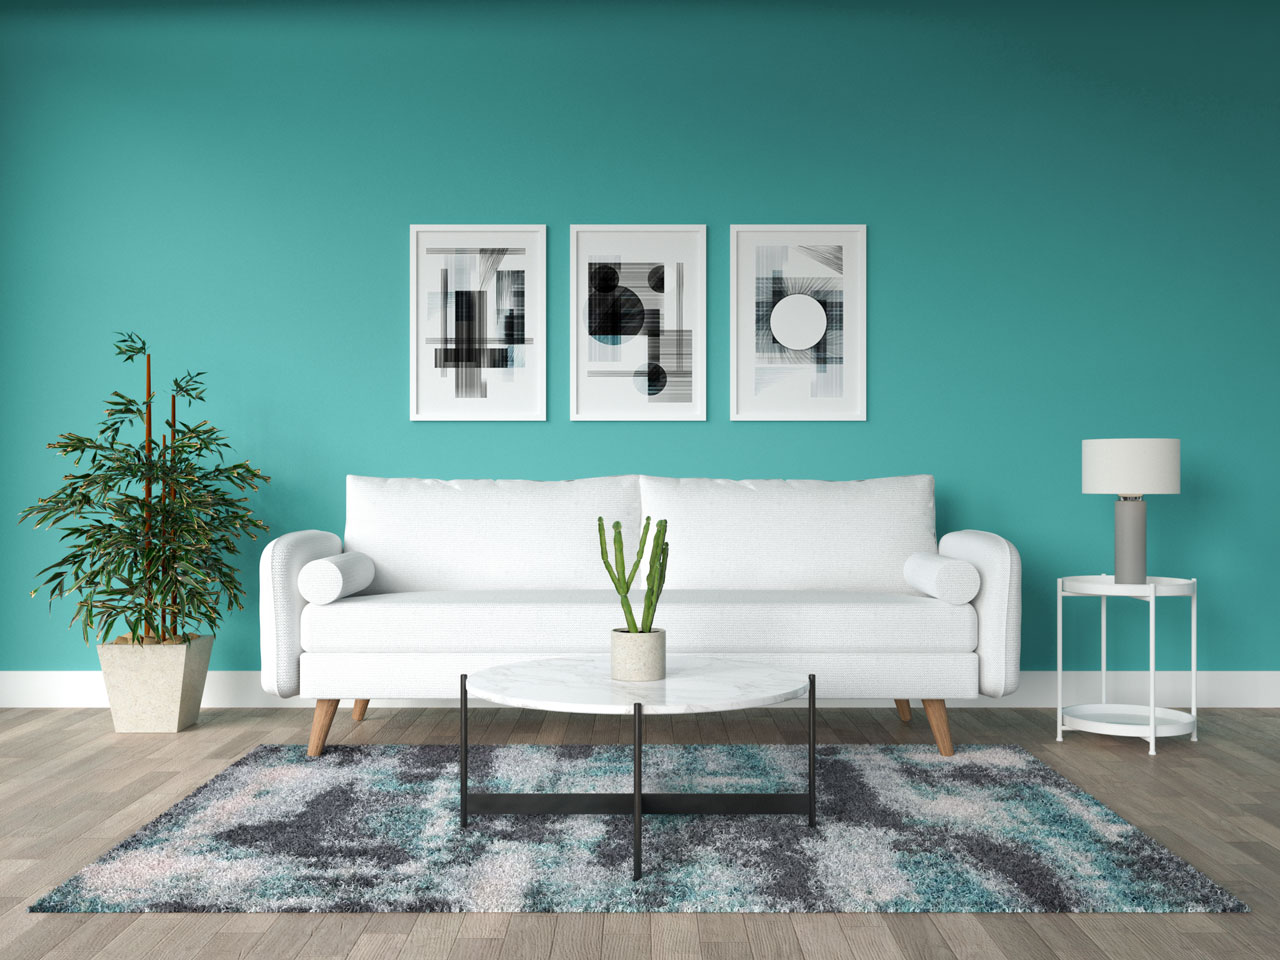 White furniture inside living room with teal walls